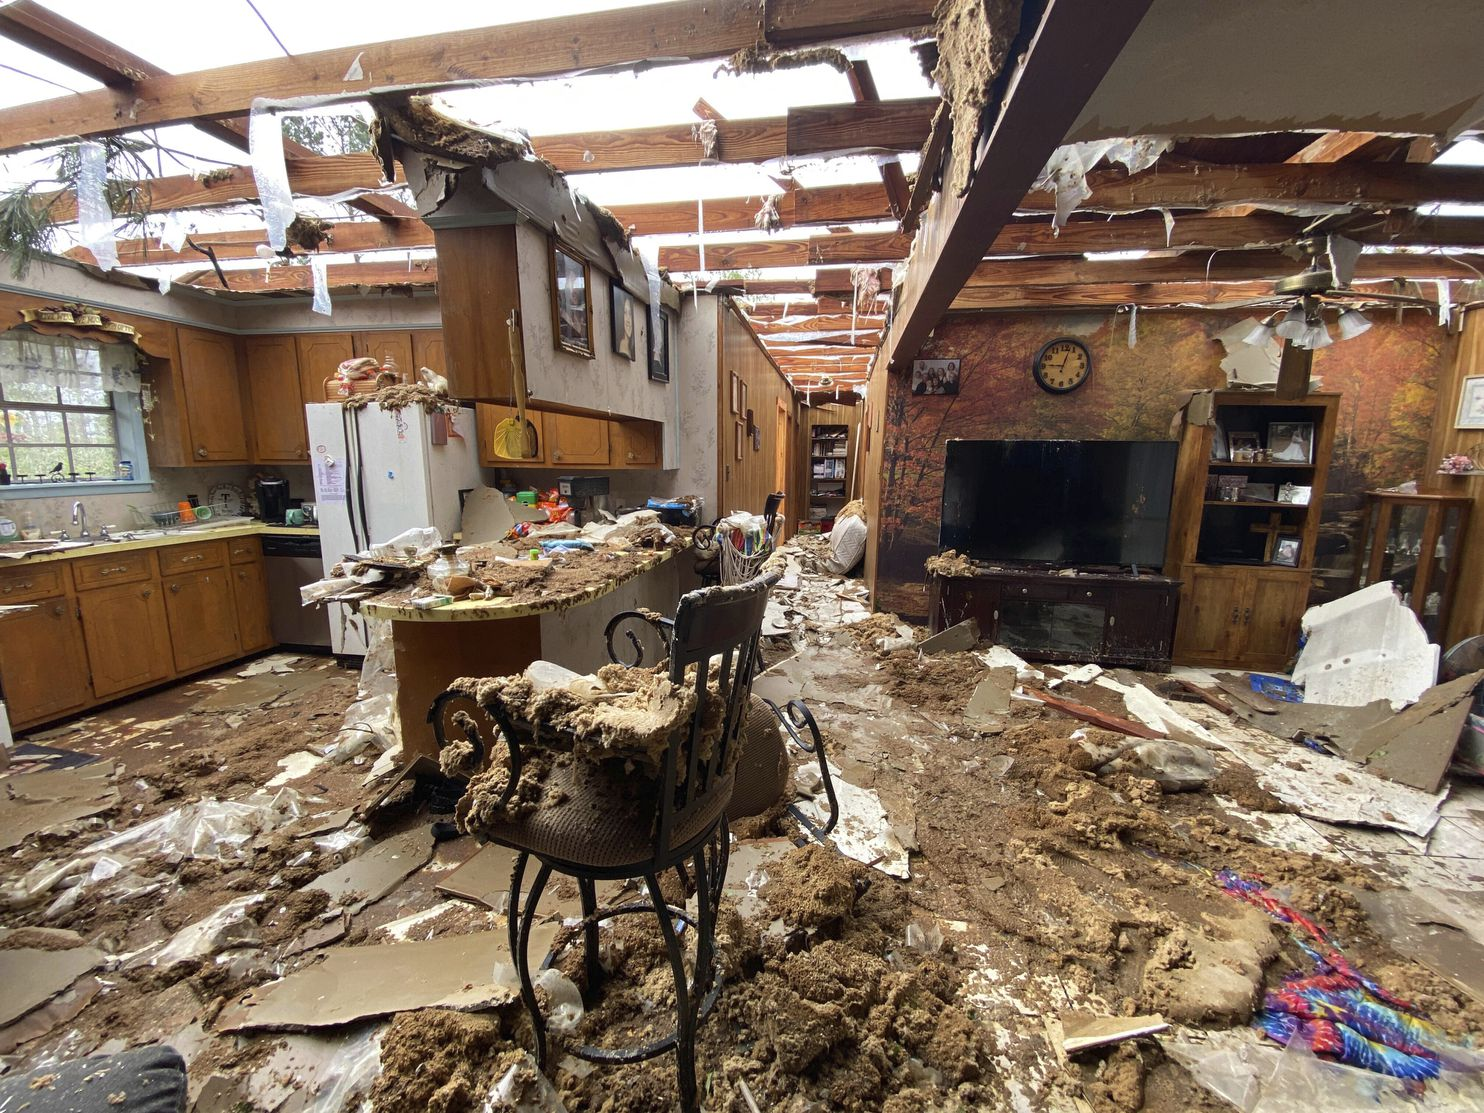 Severe Thunderstorms Tornadoes Hit South For Second